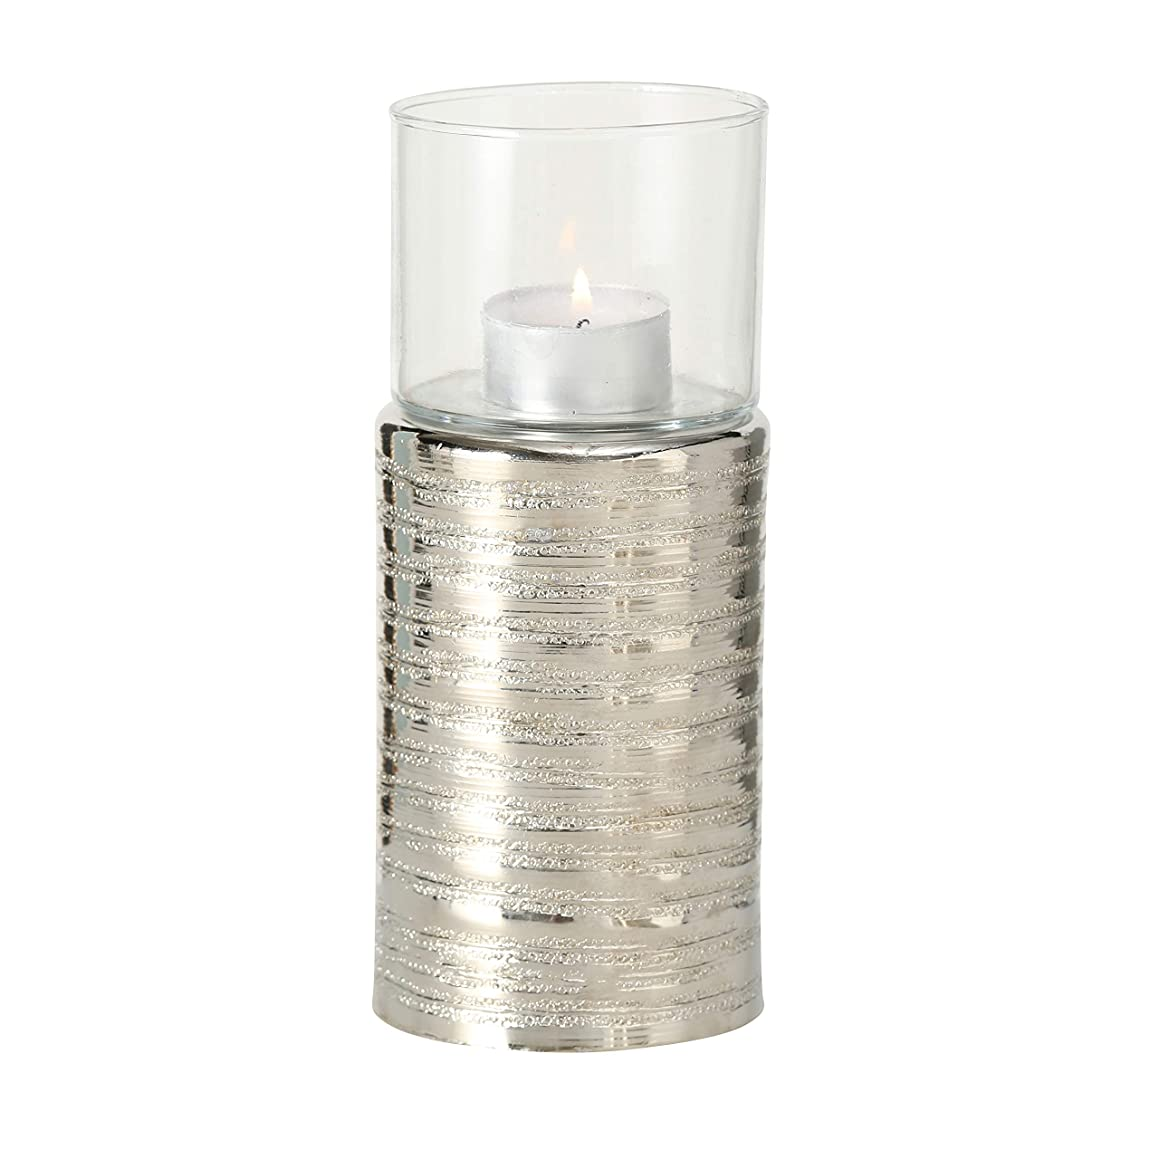 Silver Shimmer Pedestal Tea Light Candle Holder, Luxurious Hotel Style, Glass Sleeve, Textured Metal Base, 7 1/2 Inches Tall, Hammered Aluminum, Exquisite Stacked Ripple-Ring Pattern